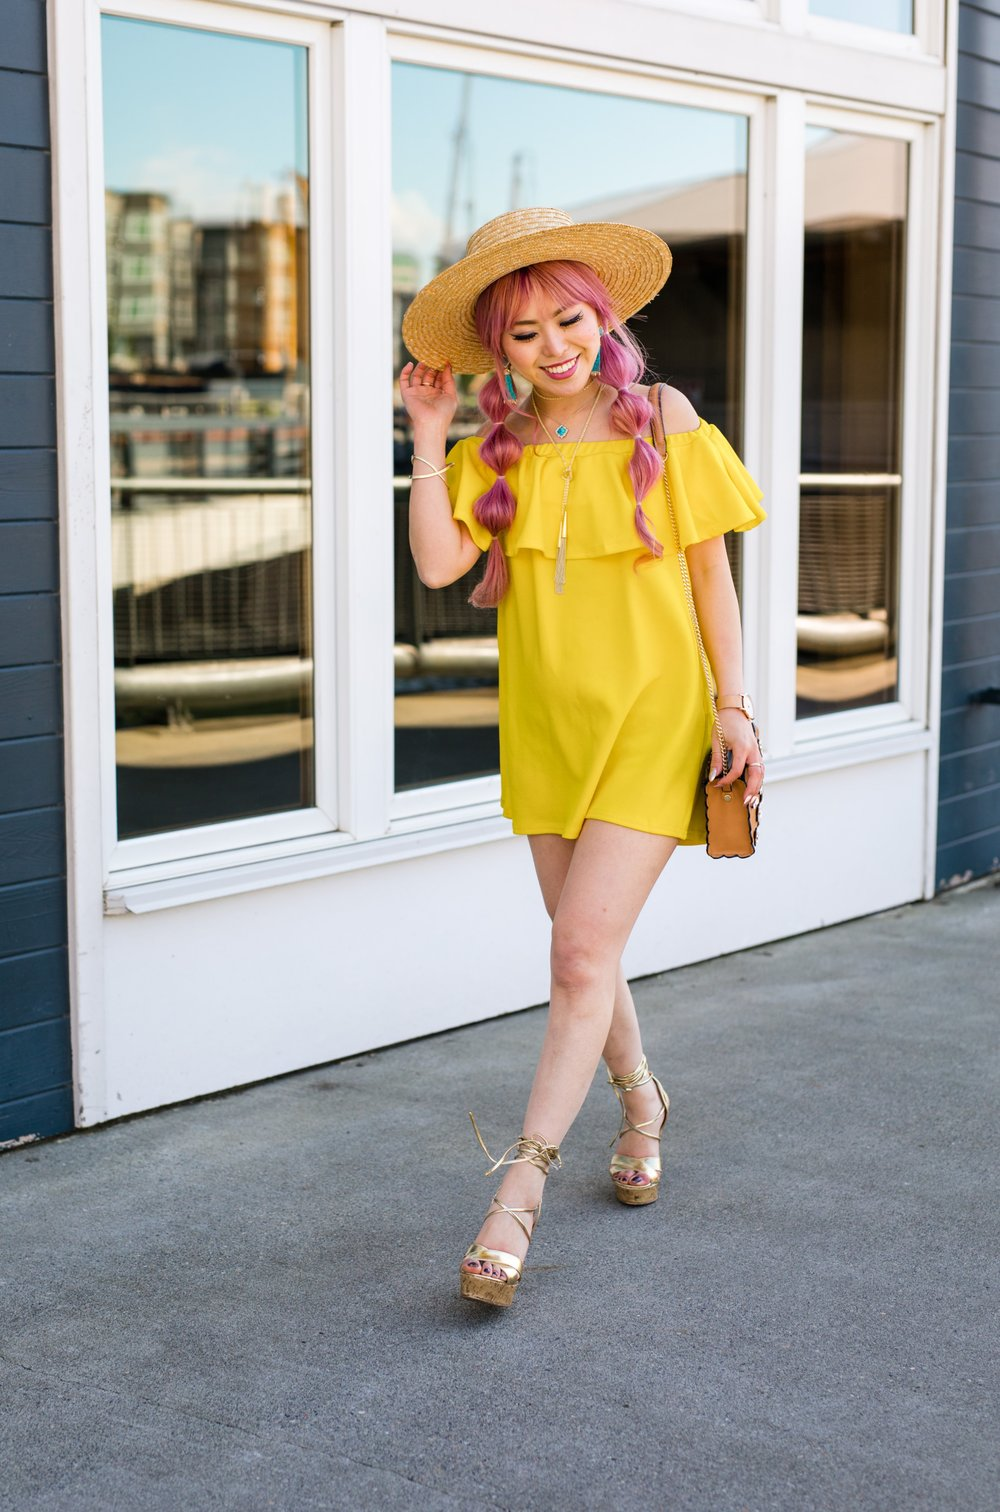 Lack Of Color Wide brim Straw Hat_Boohoo Yellow Off the shoulder dress via ASOS_ZARA CROSSBODY BAG WITH FLOWERS_Shoe Dazzle Lace up Wedge Sandals_Kendra Scott MISHA STATEMENT EARRINGS IN BRONZE VEINED TURQUOISE_KACEY LONG PENDANT NECKLACE IN BRONZE VEINED TURQUOISE_Phara Necklace In Gold_Stella Cuff Bracelet In Gold_Pink Hair_bubble pigtails hairstyle_Aikas Love Closet_Seattle Fashion Style Blogger_Japanese 7